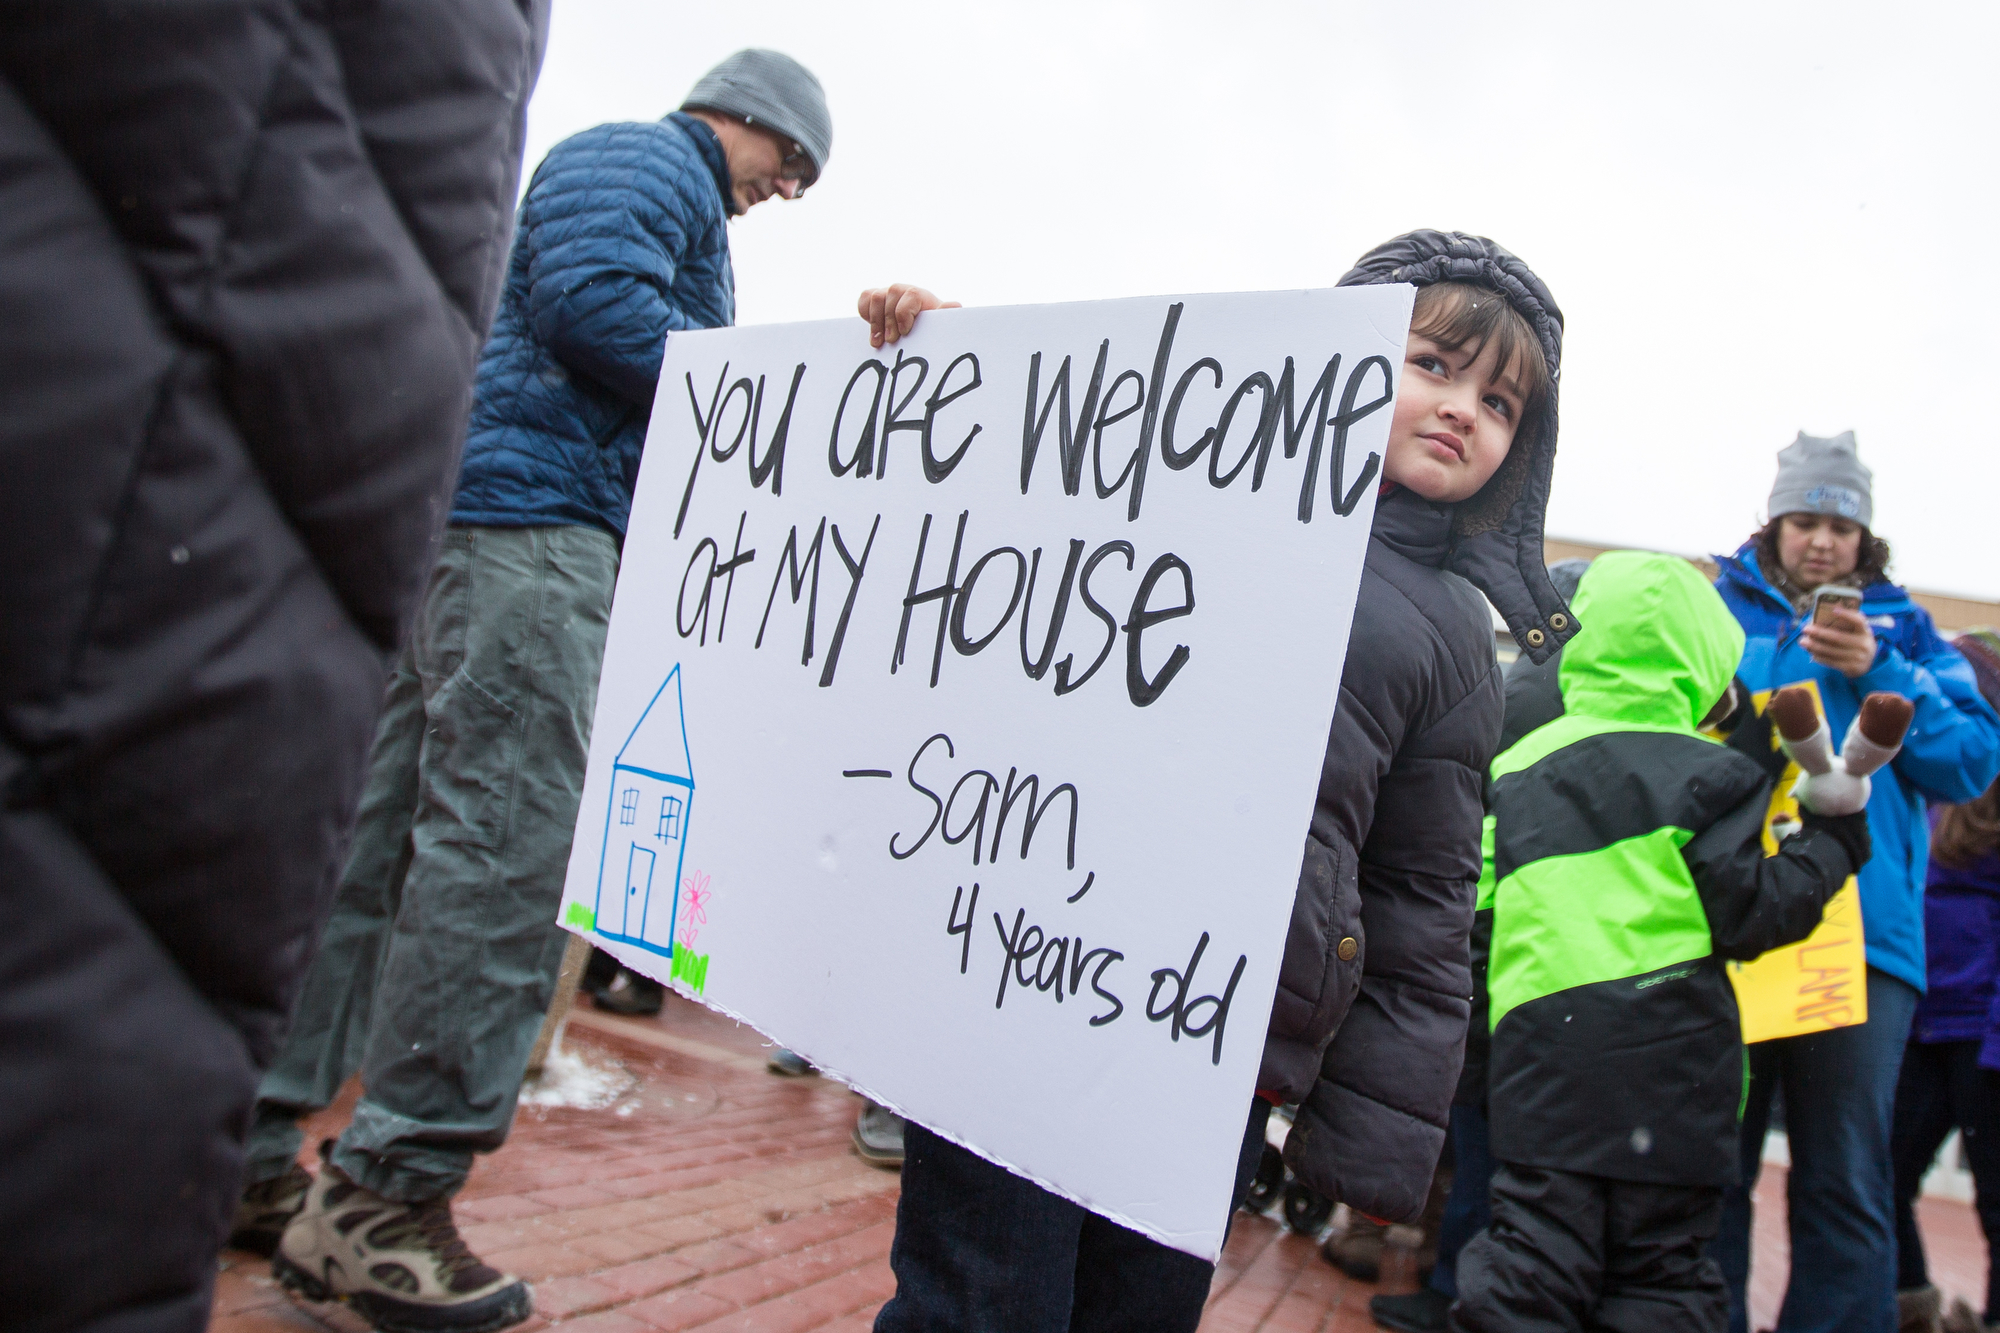 Sam Sussman, 4, holds a sign while attending an anti-immigration protest outside of the Federal Building in downtown Ann Arbor on Sunday, January 29, 2017. About 100 people attended the protest. Matt Weigand | The Ann Arbor News